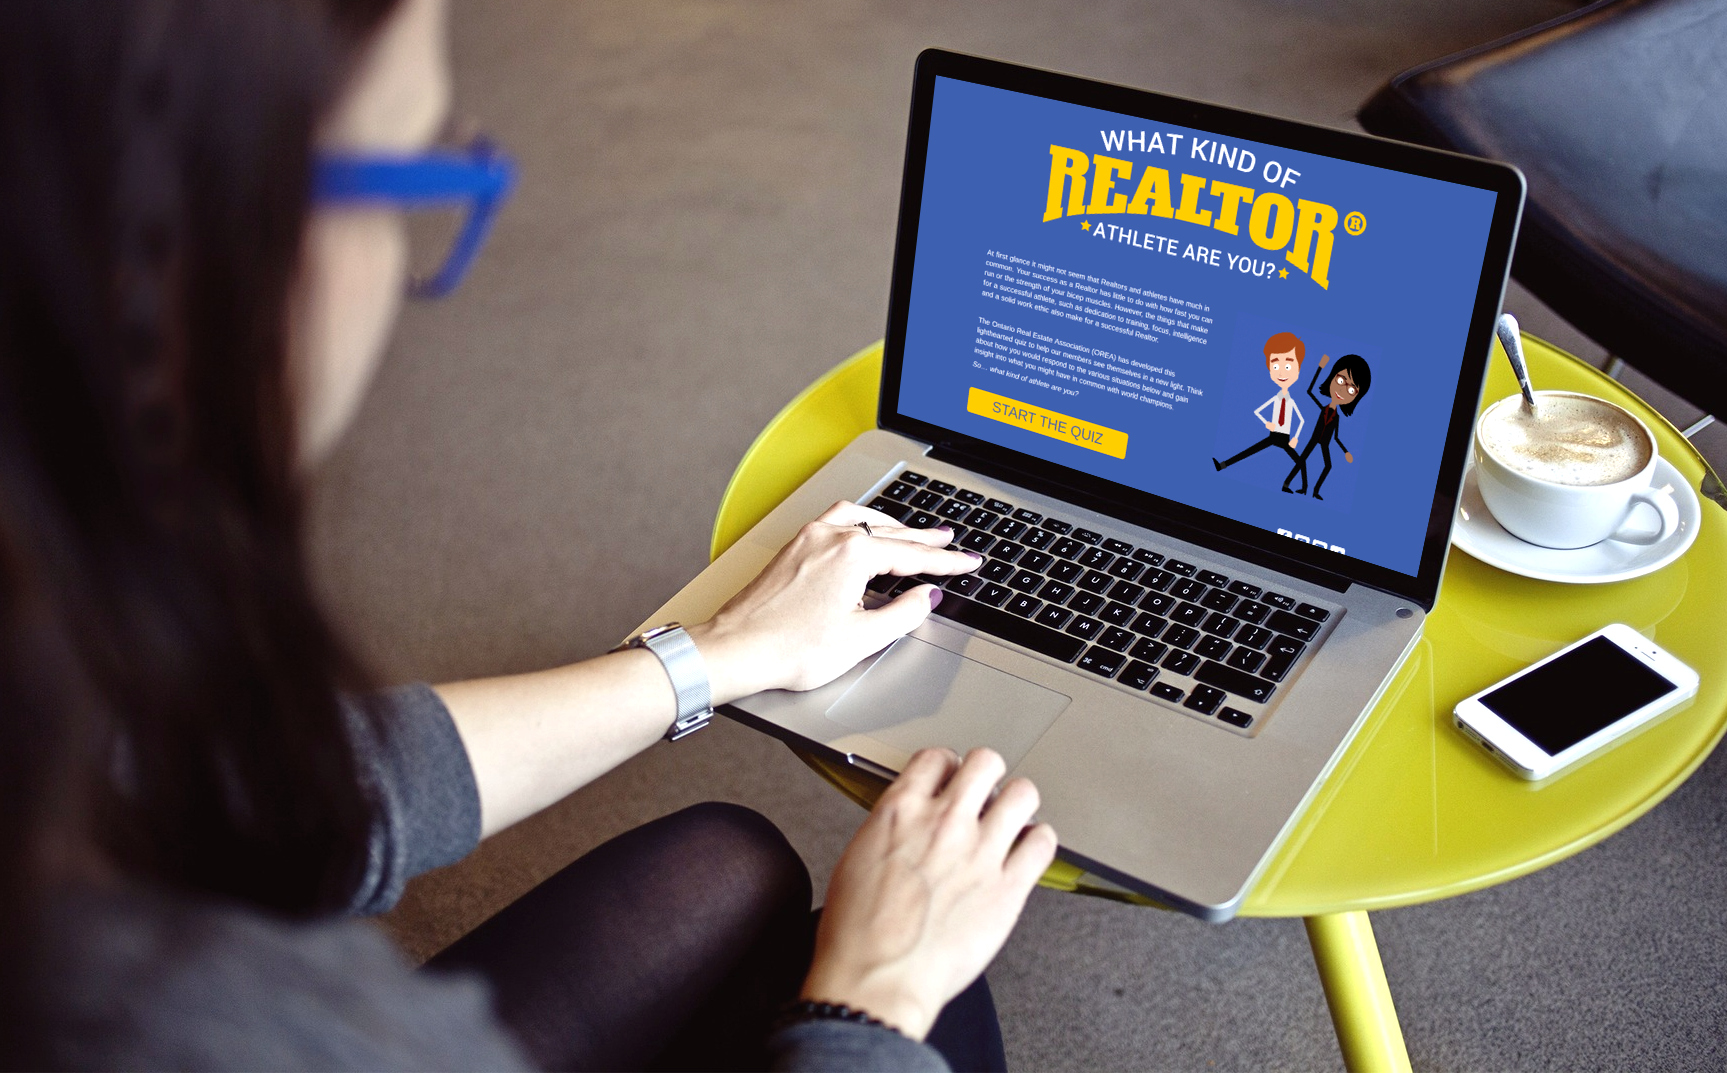 crea realtor athlete quiz